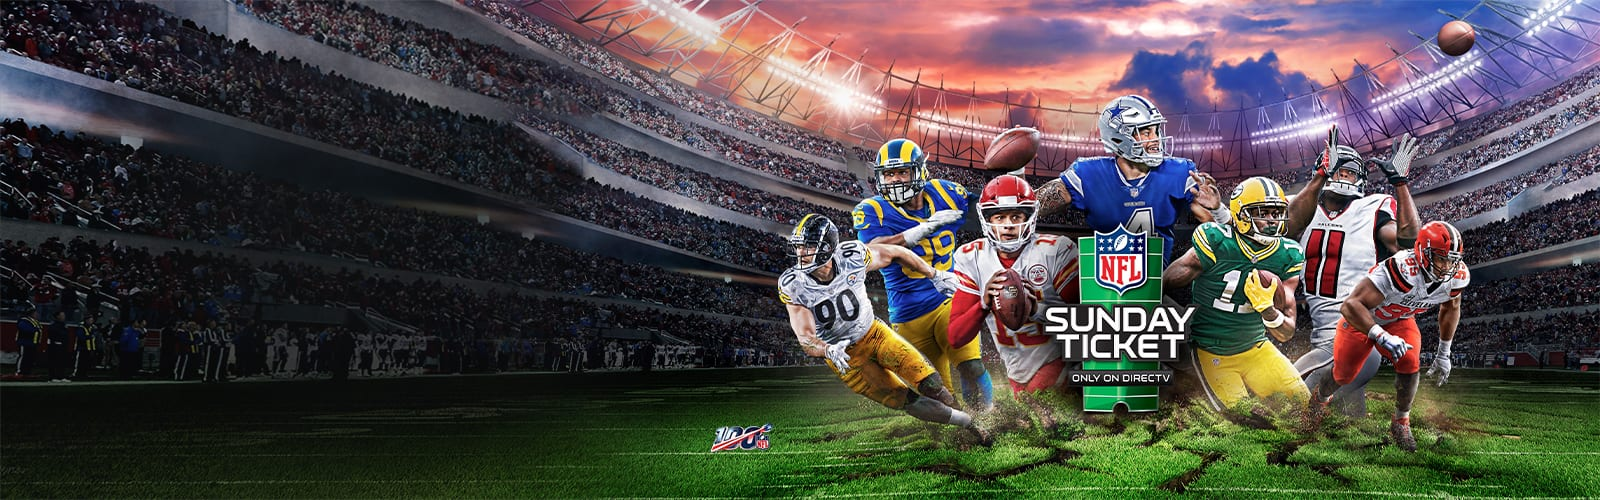 NFL SUNDAY TICKET 2019 Season | DIRECTV Official Site